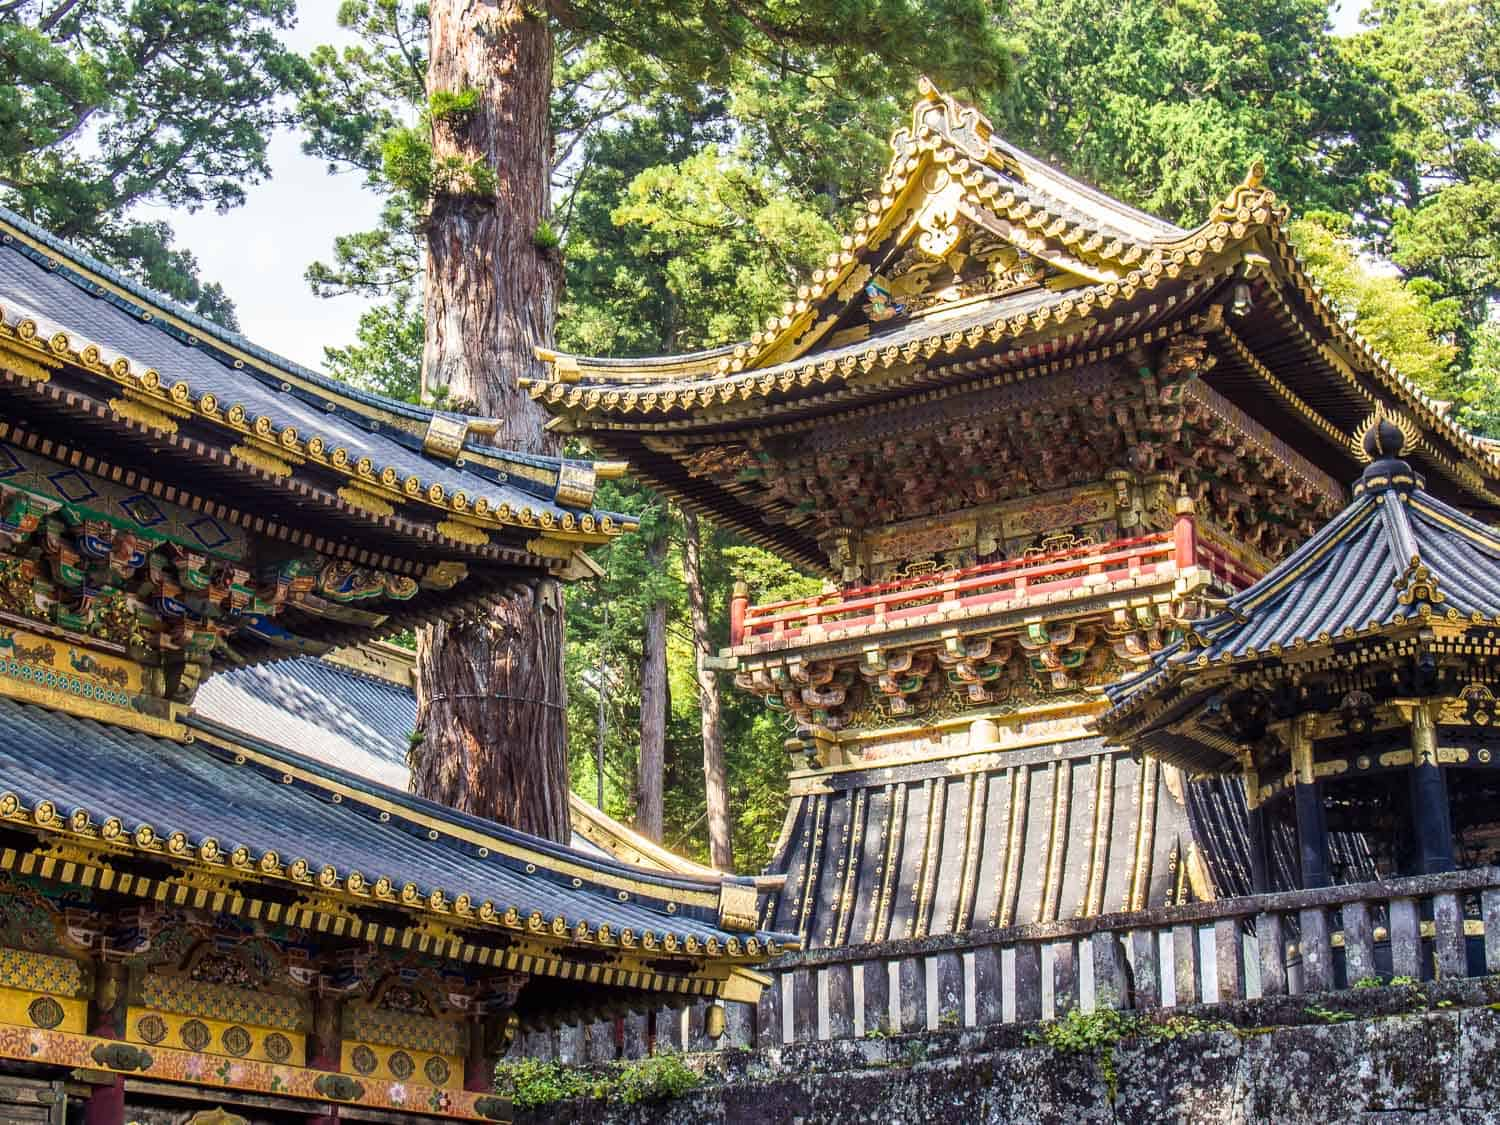 Toshogu Shrine in Nikko, the first stop after Tokyo on our two week trip in Japan